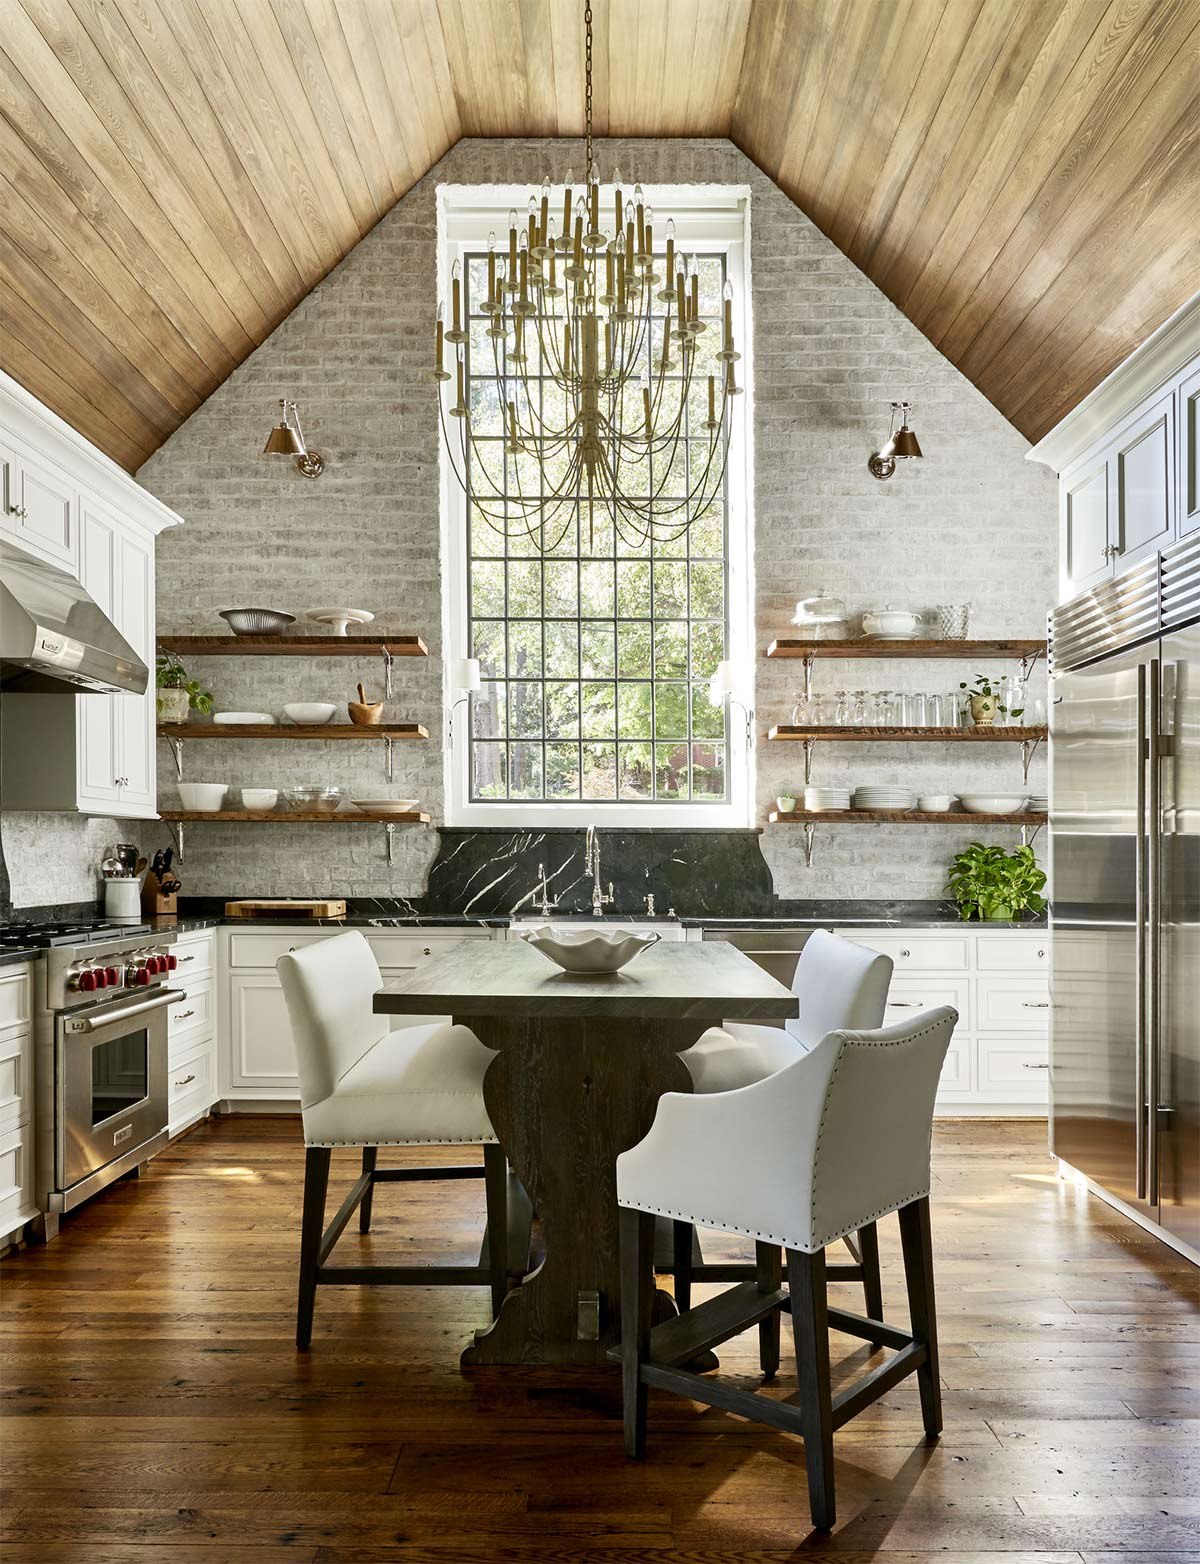 Vaulted Ceilings in the Kitchen: Pros and Cons - Plank and Pillow